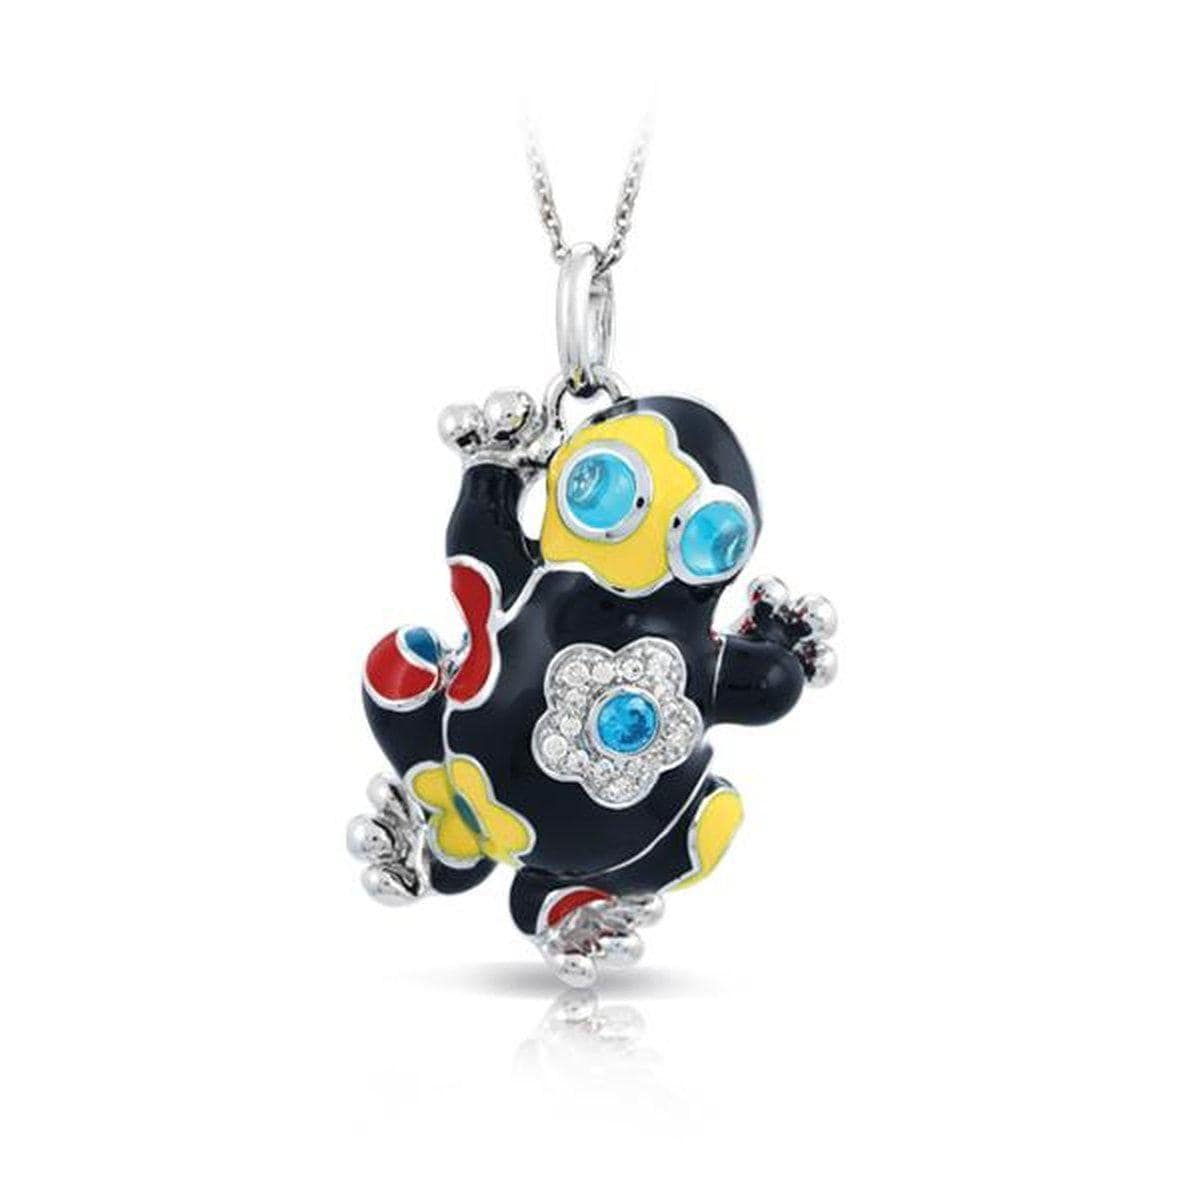 Lucky Frog Black Pendant-Belle Etoile-Renee Taylor Gallery